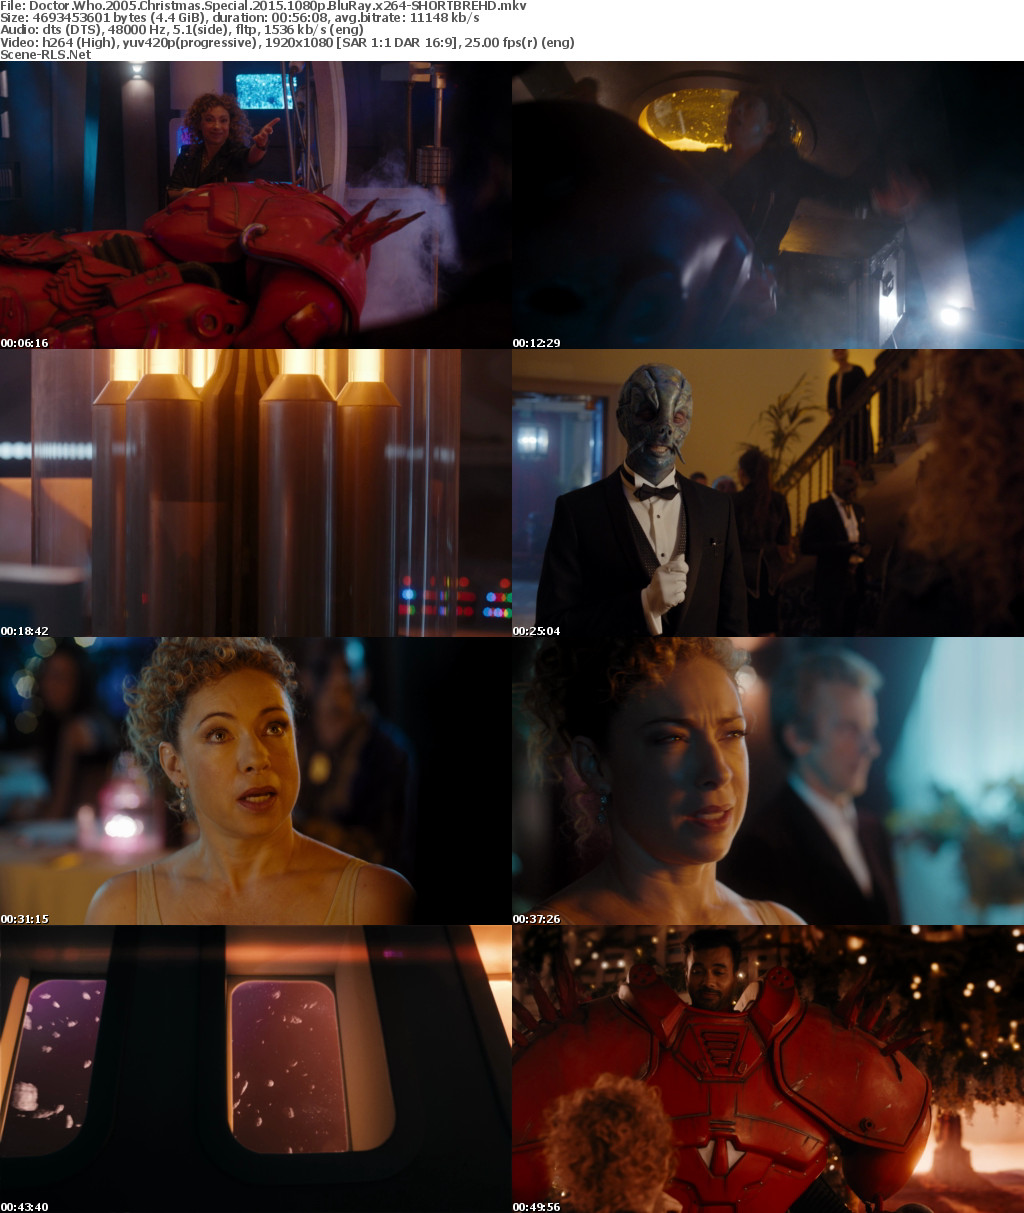 Doctor Who Christmas Special 2015.Doctor Who 2005 Christmas Special 2015 1080p Bluray X264